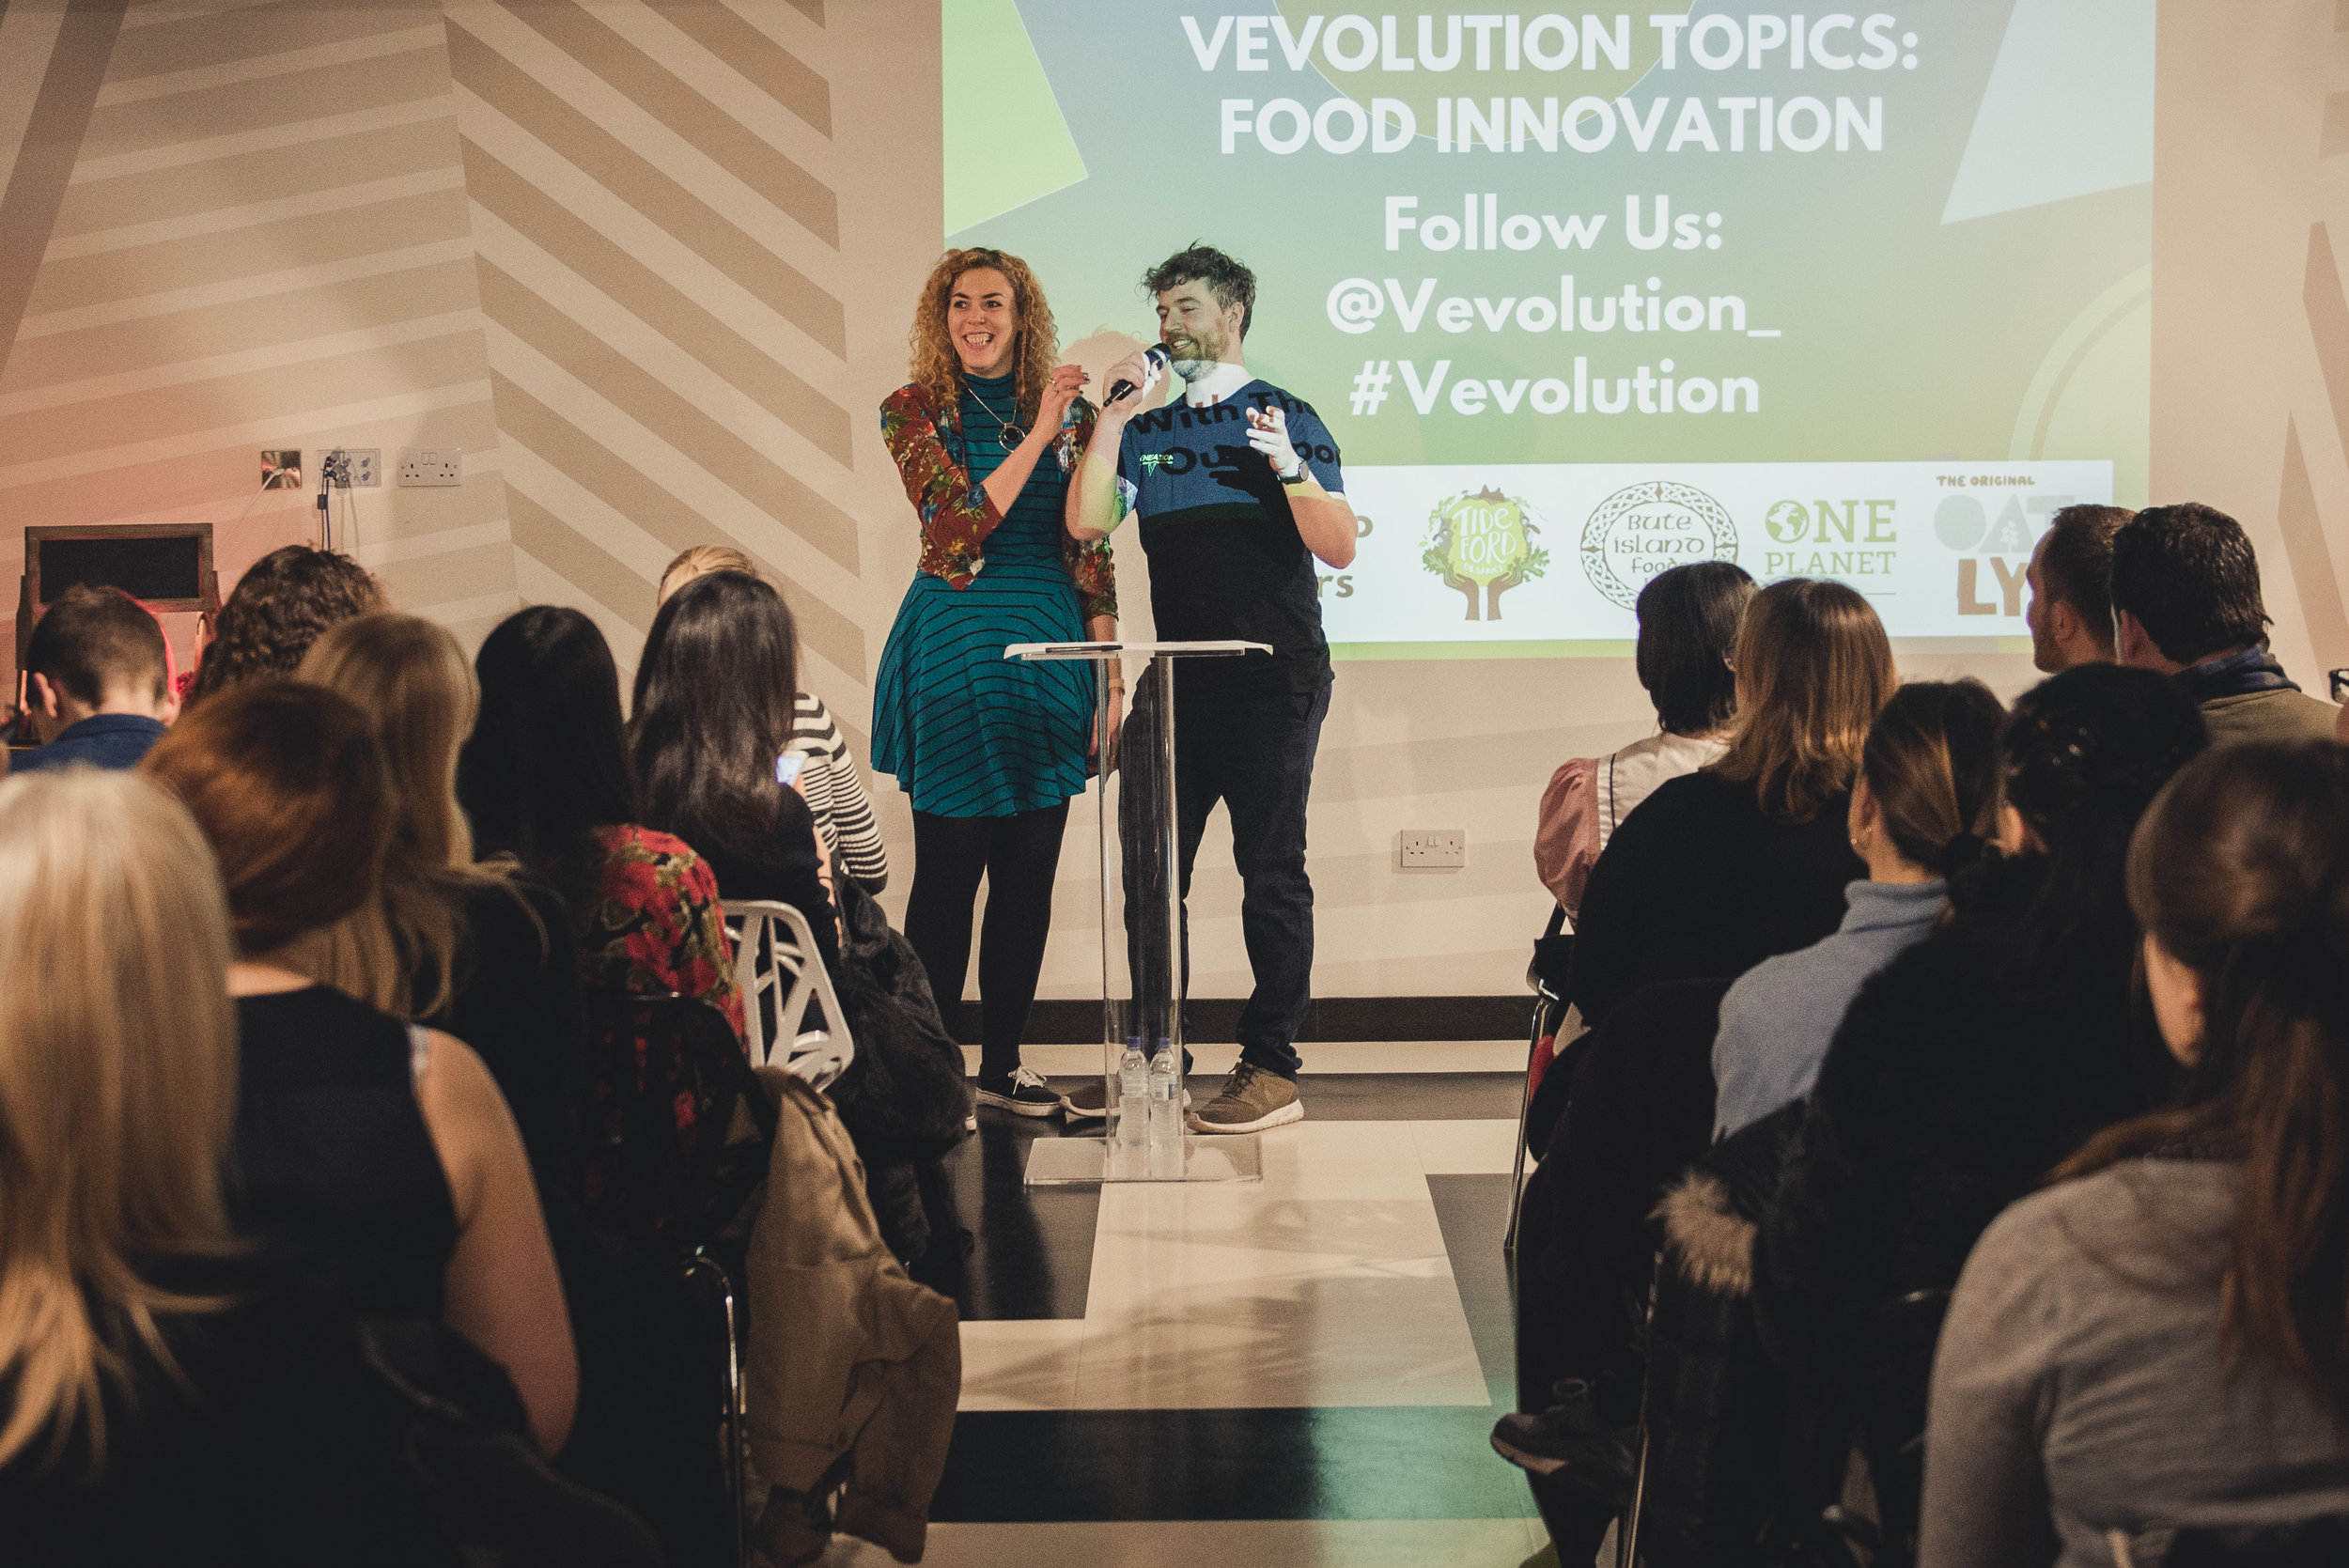 Damien Clarkson and Judy Nadel, Vevolution Co-Founders